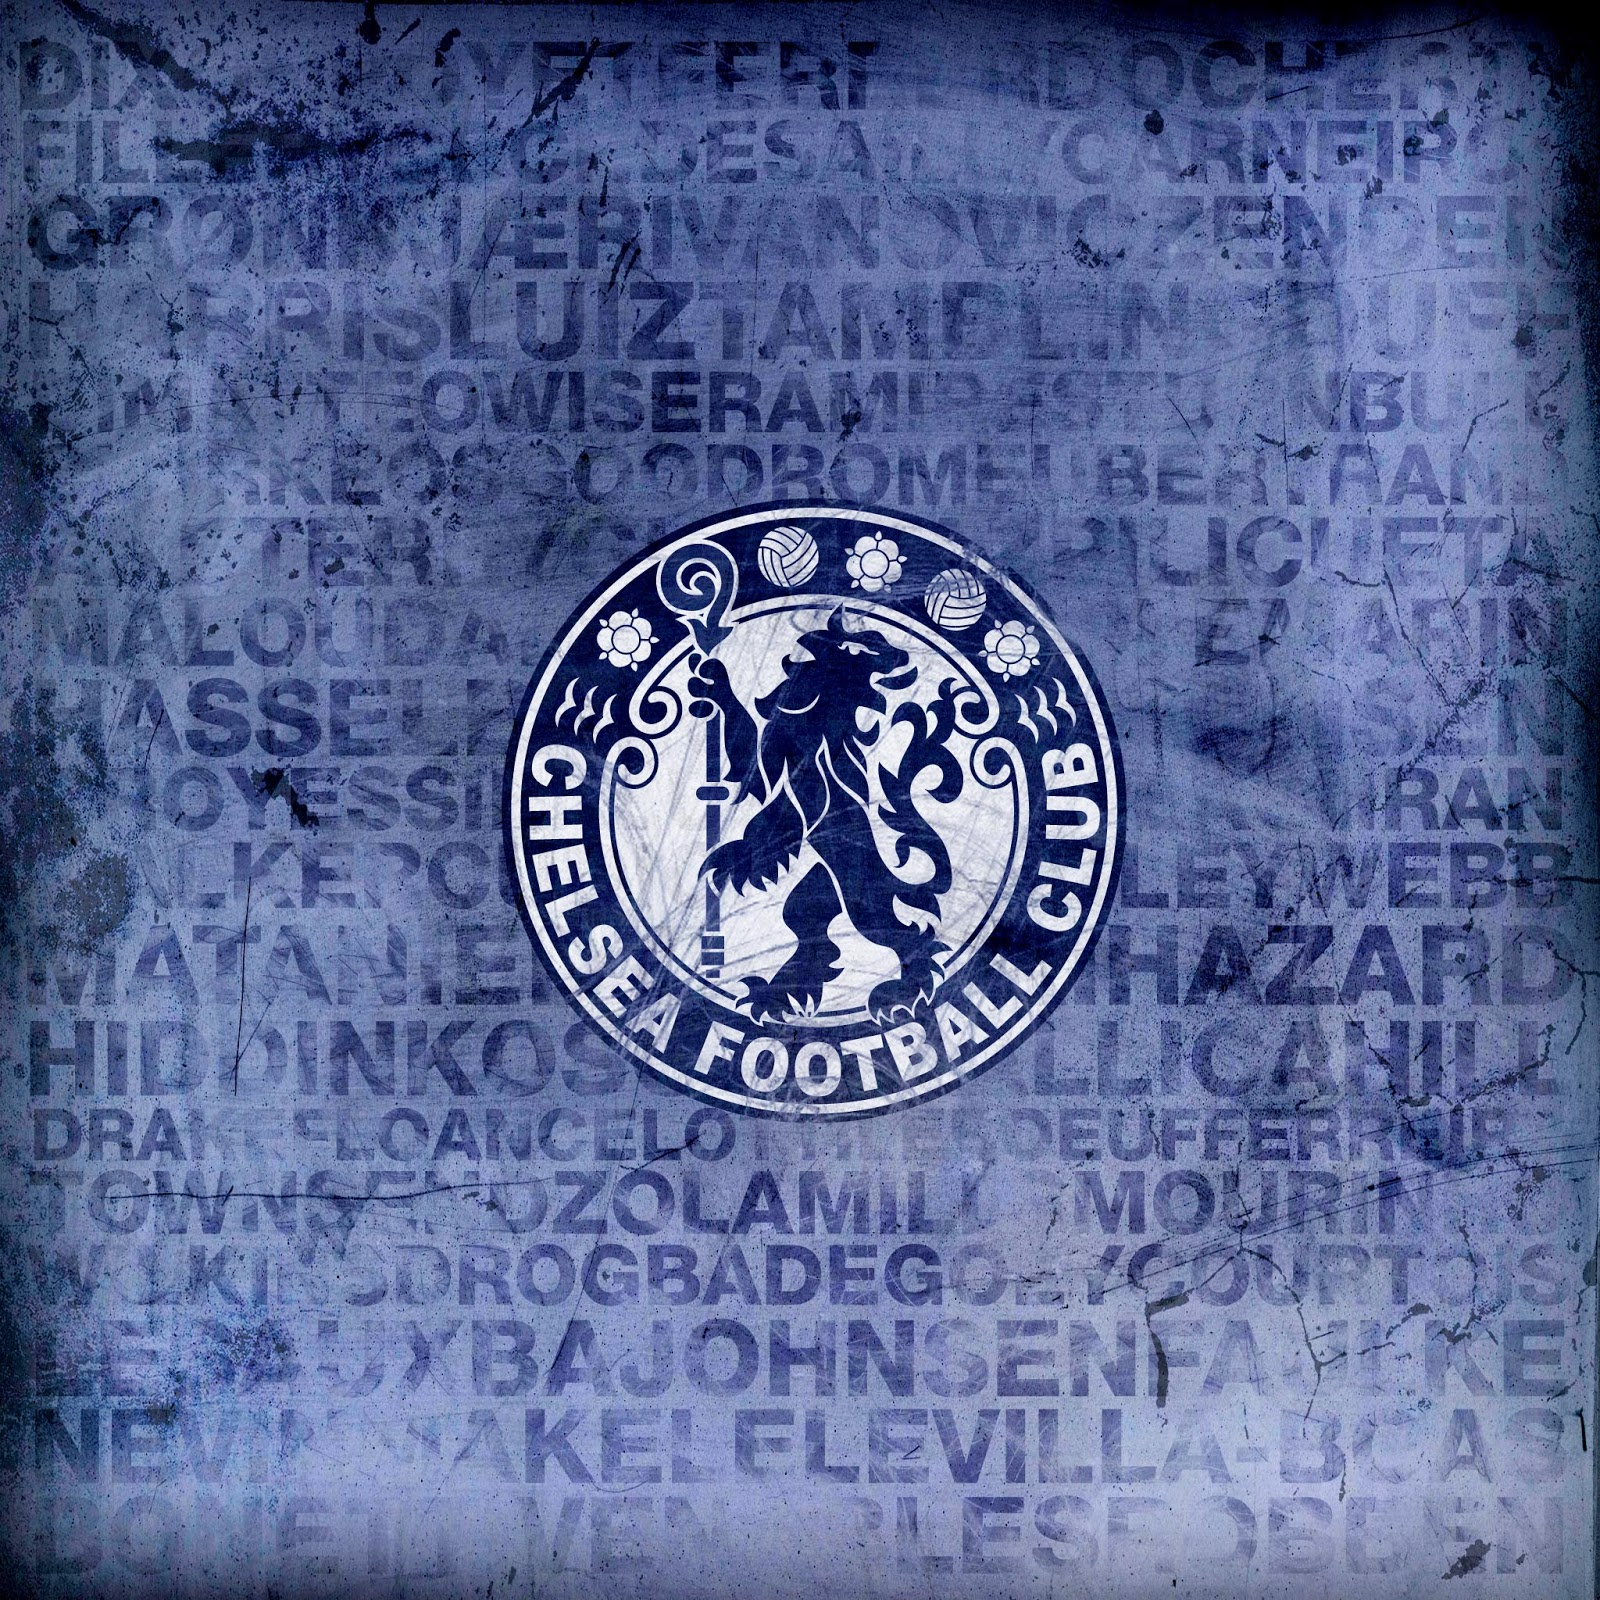 Chelsea Football Club Wallpaper